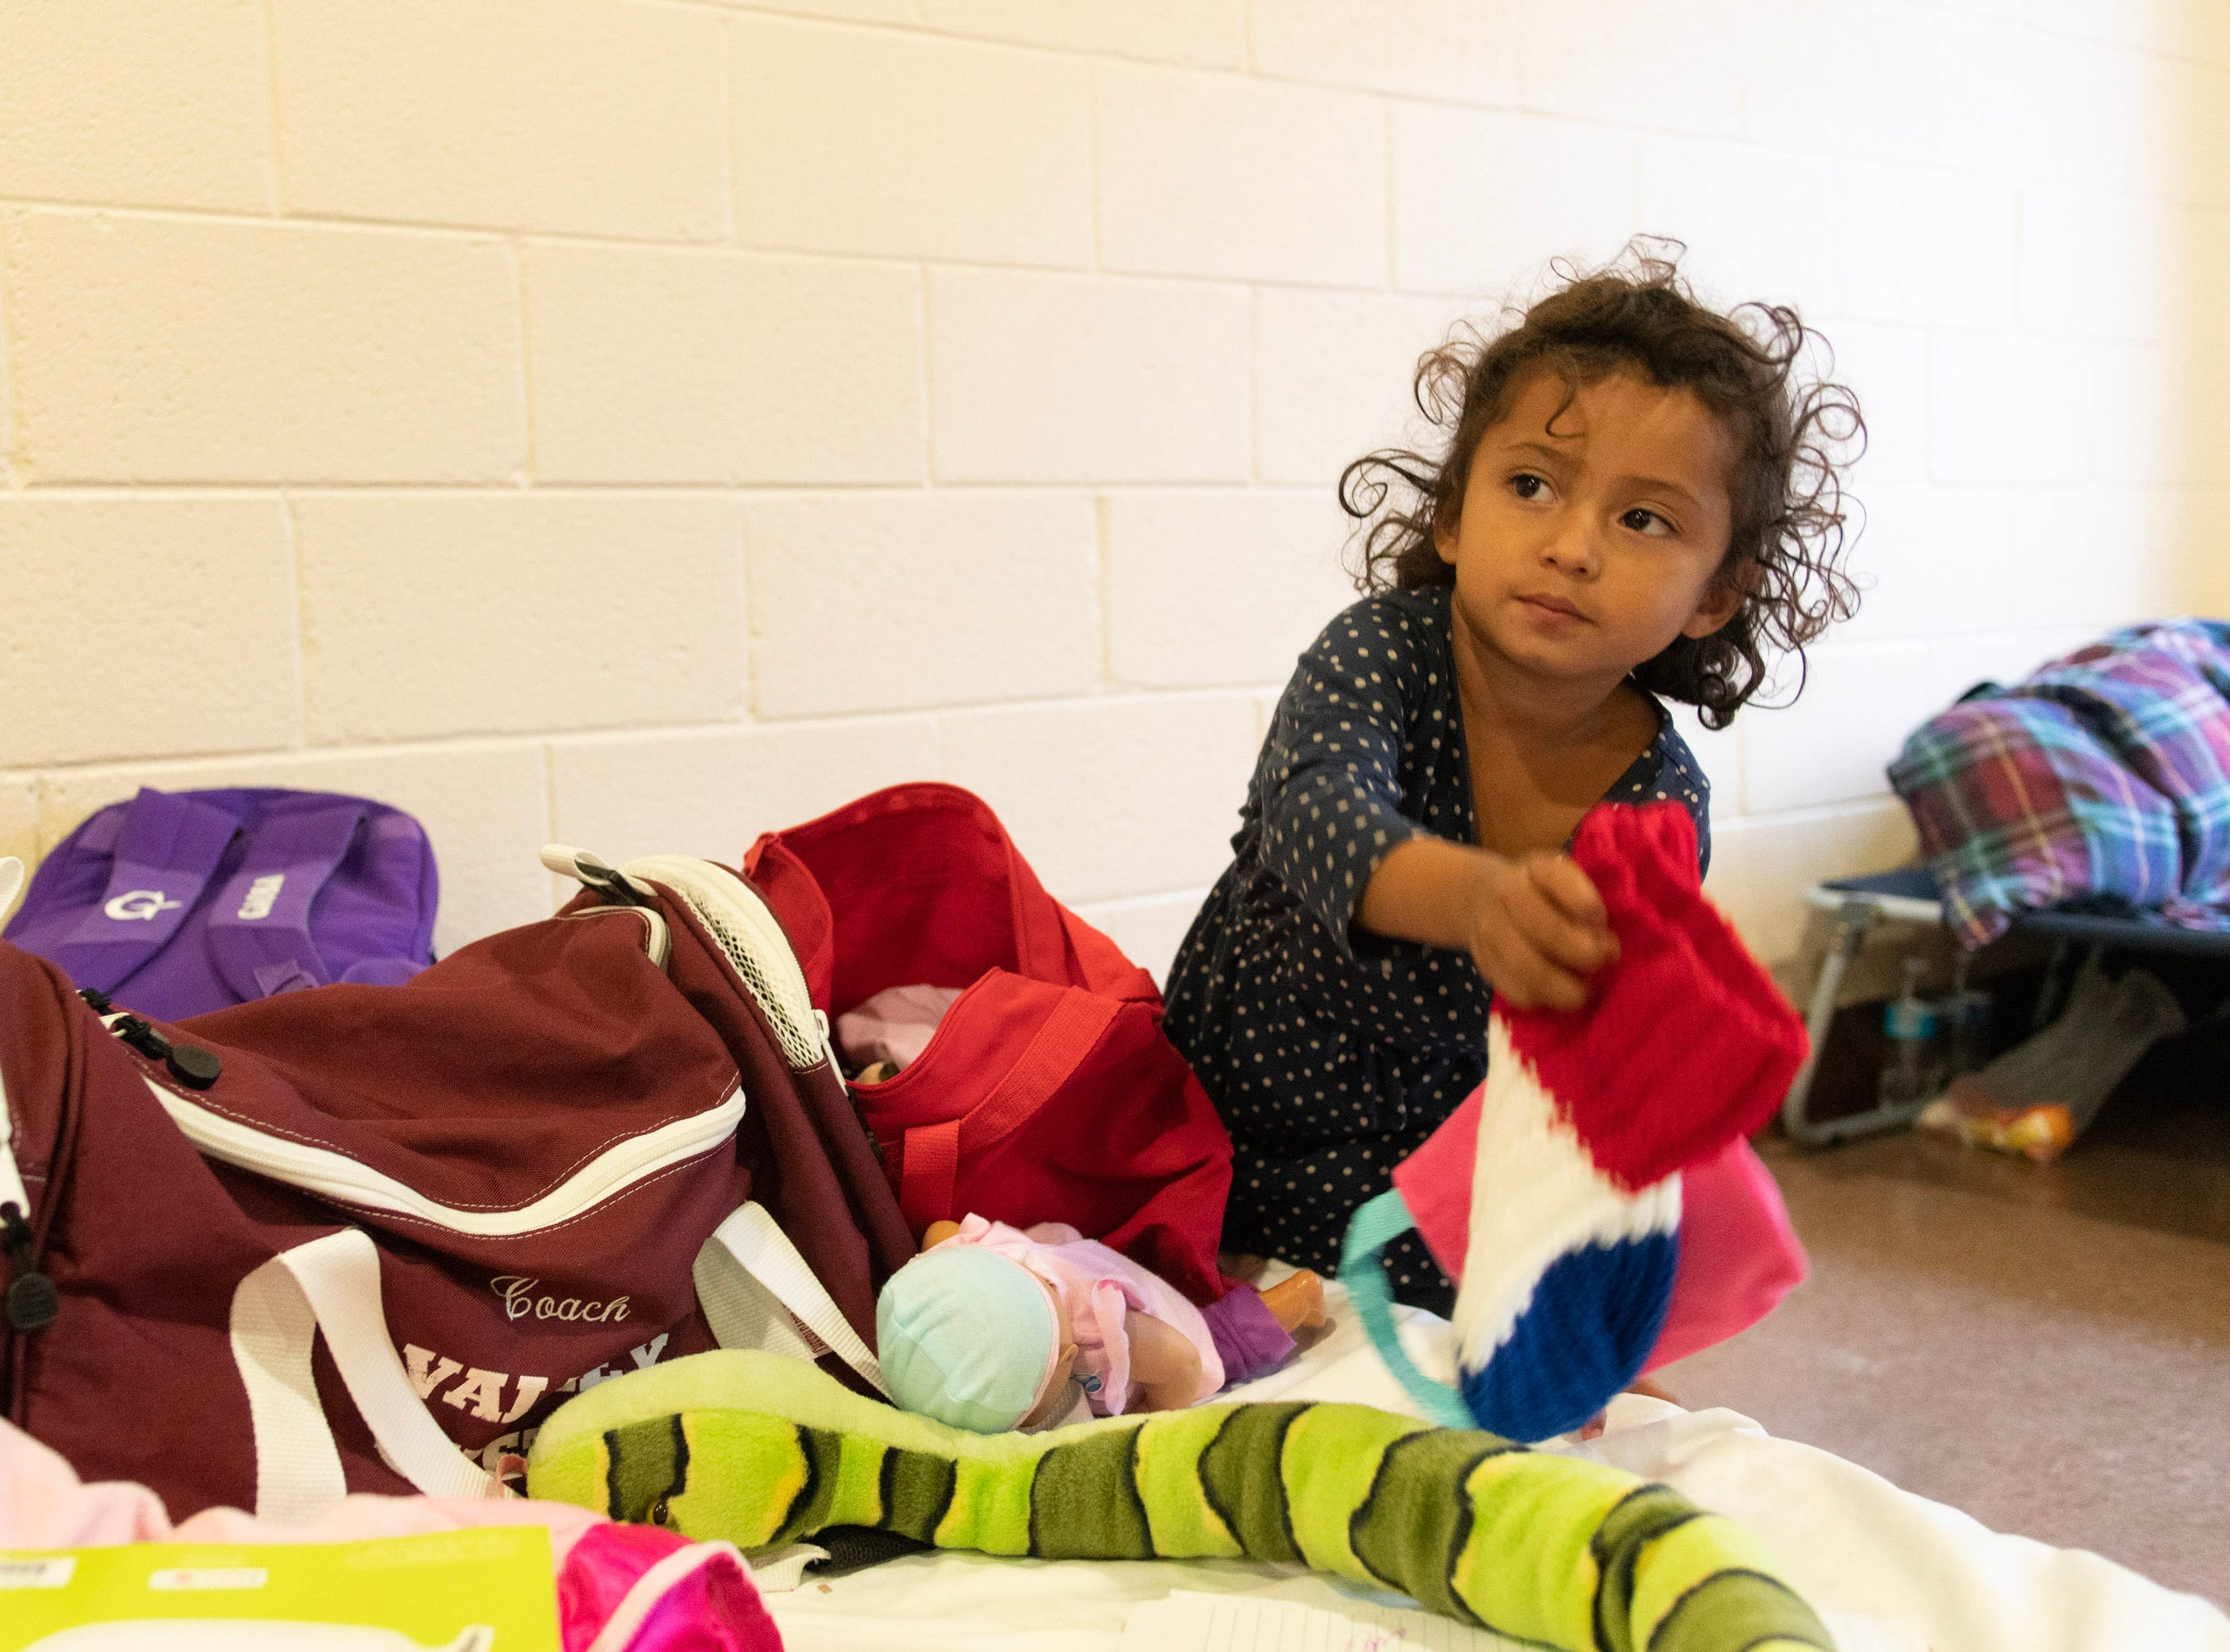 """For children who migrate north, """"the risks are enormous,"""" says Marlene Baska, who runs a medical clinic in Animas, New Mexico. """"With their developmental status, the trauma of the experience will affect the rest of their lives."""" Pictured is Adriana, age 3, sorting through her new belongings, donated at the Immaculate Heart of Mary church."""